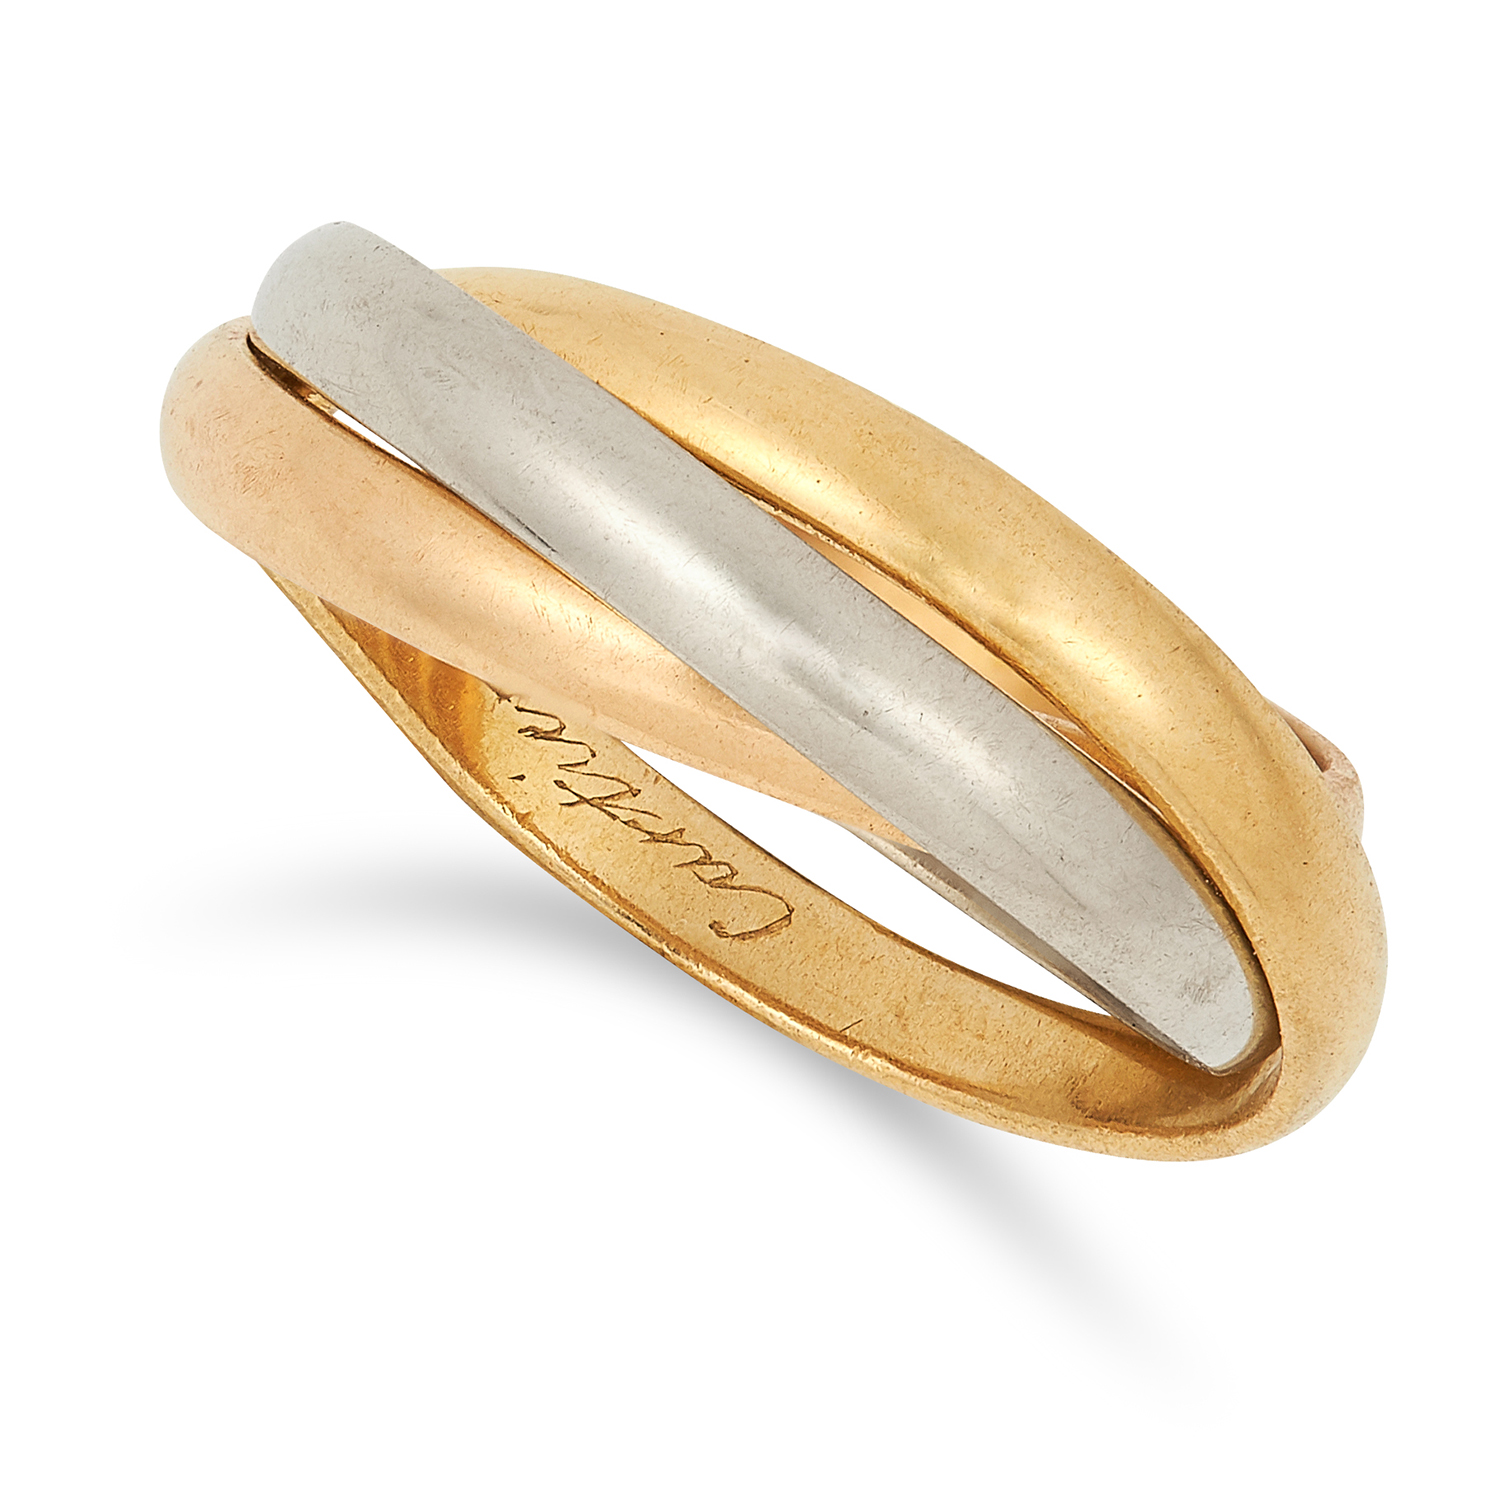 A TRINITY DE CARTIER BAND RING, CARTIER comprising of three gold bands, signed Cartier Paris, French